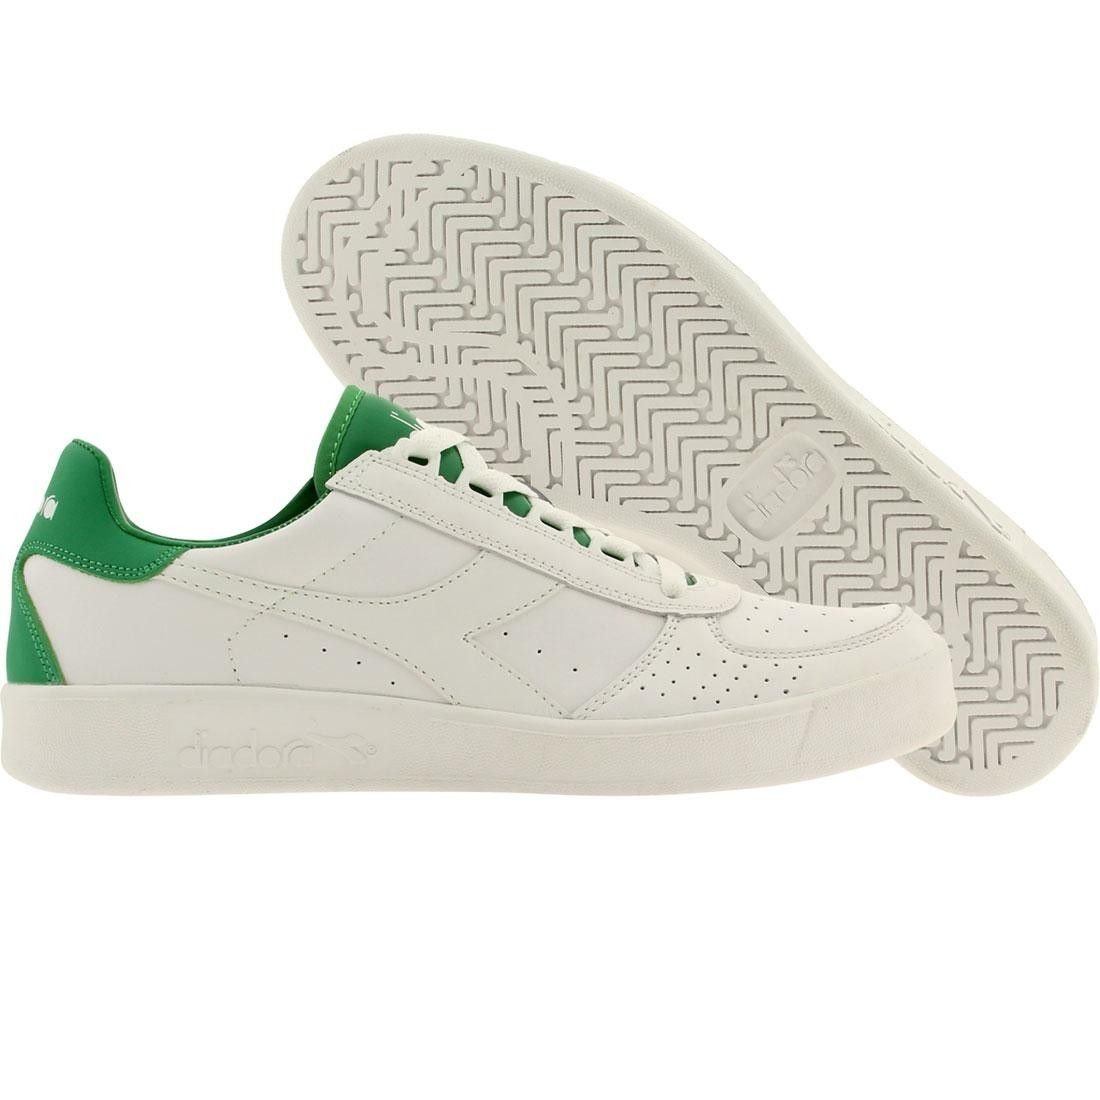 Diadora B Elite Men White/Peas Cream Shoes